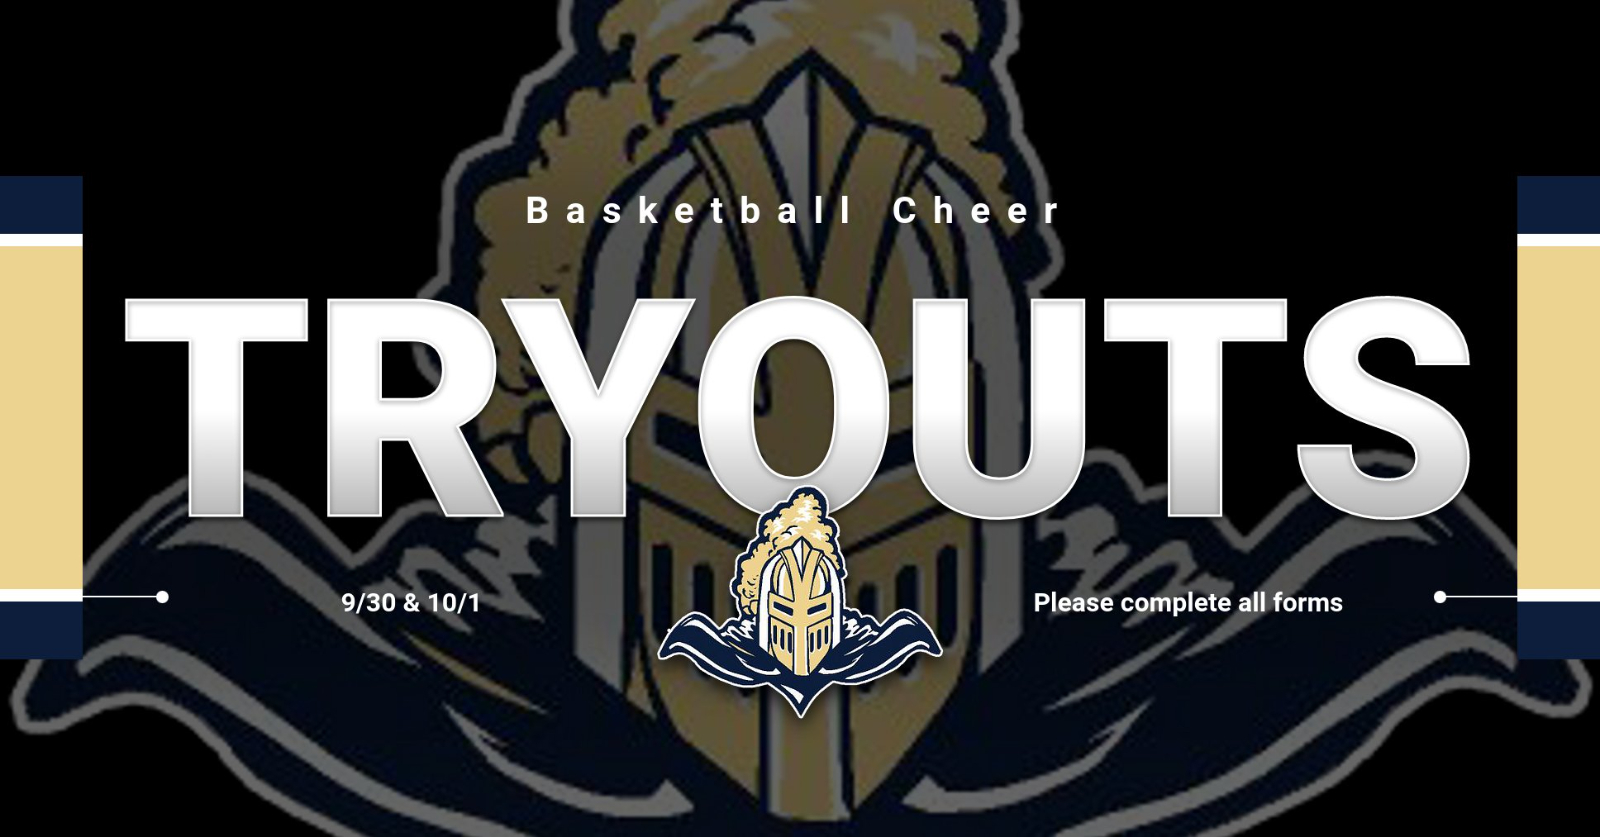 Basketball Cheer – Tryout Info